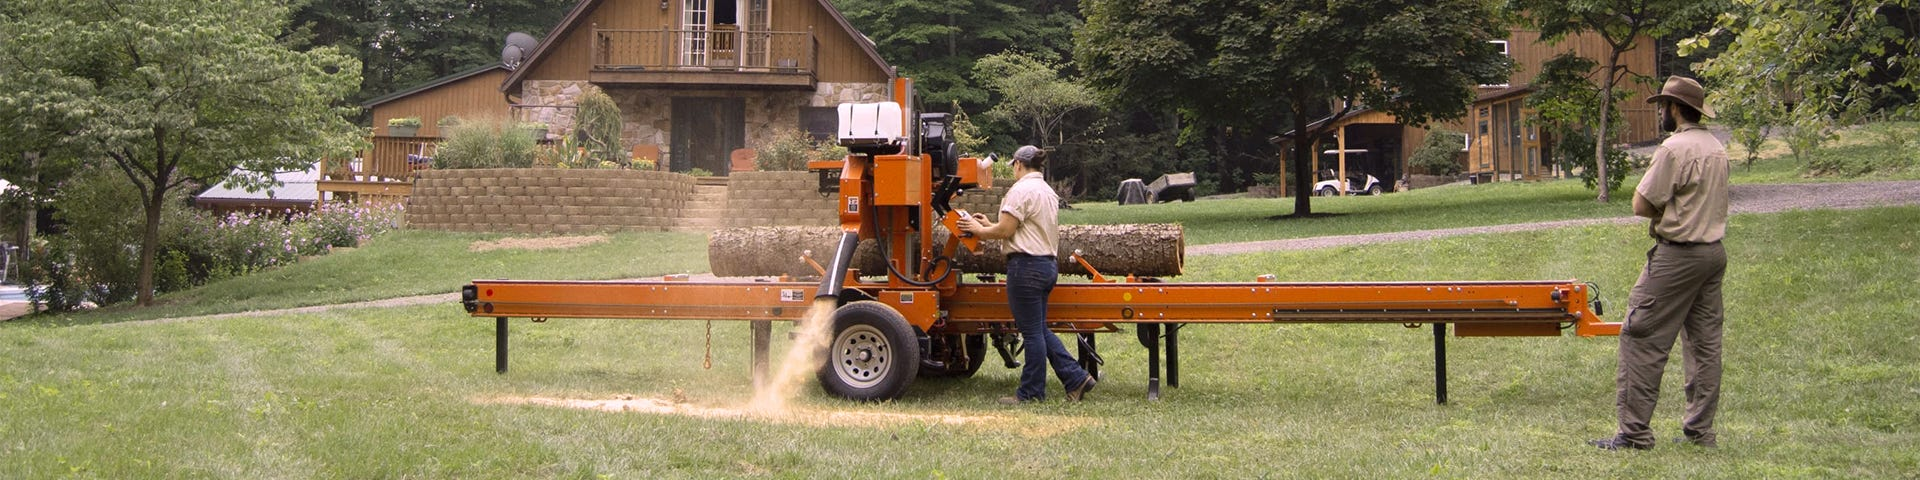 Portable Sawmills